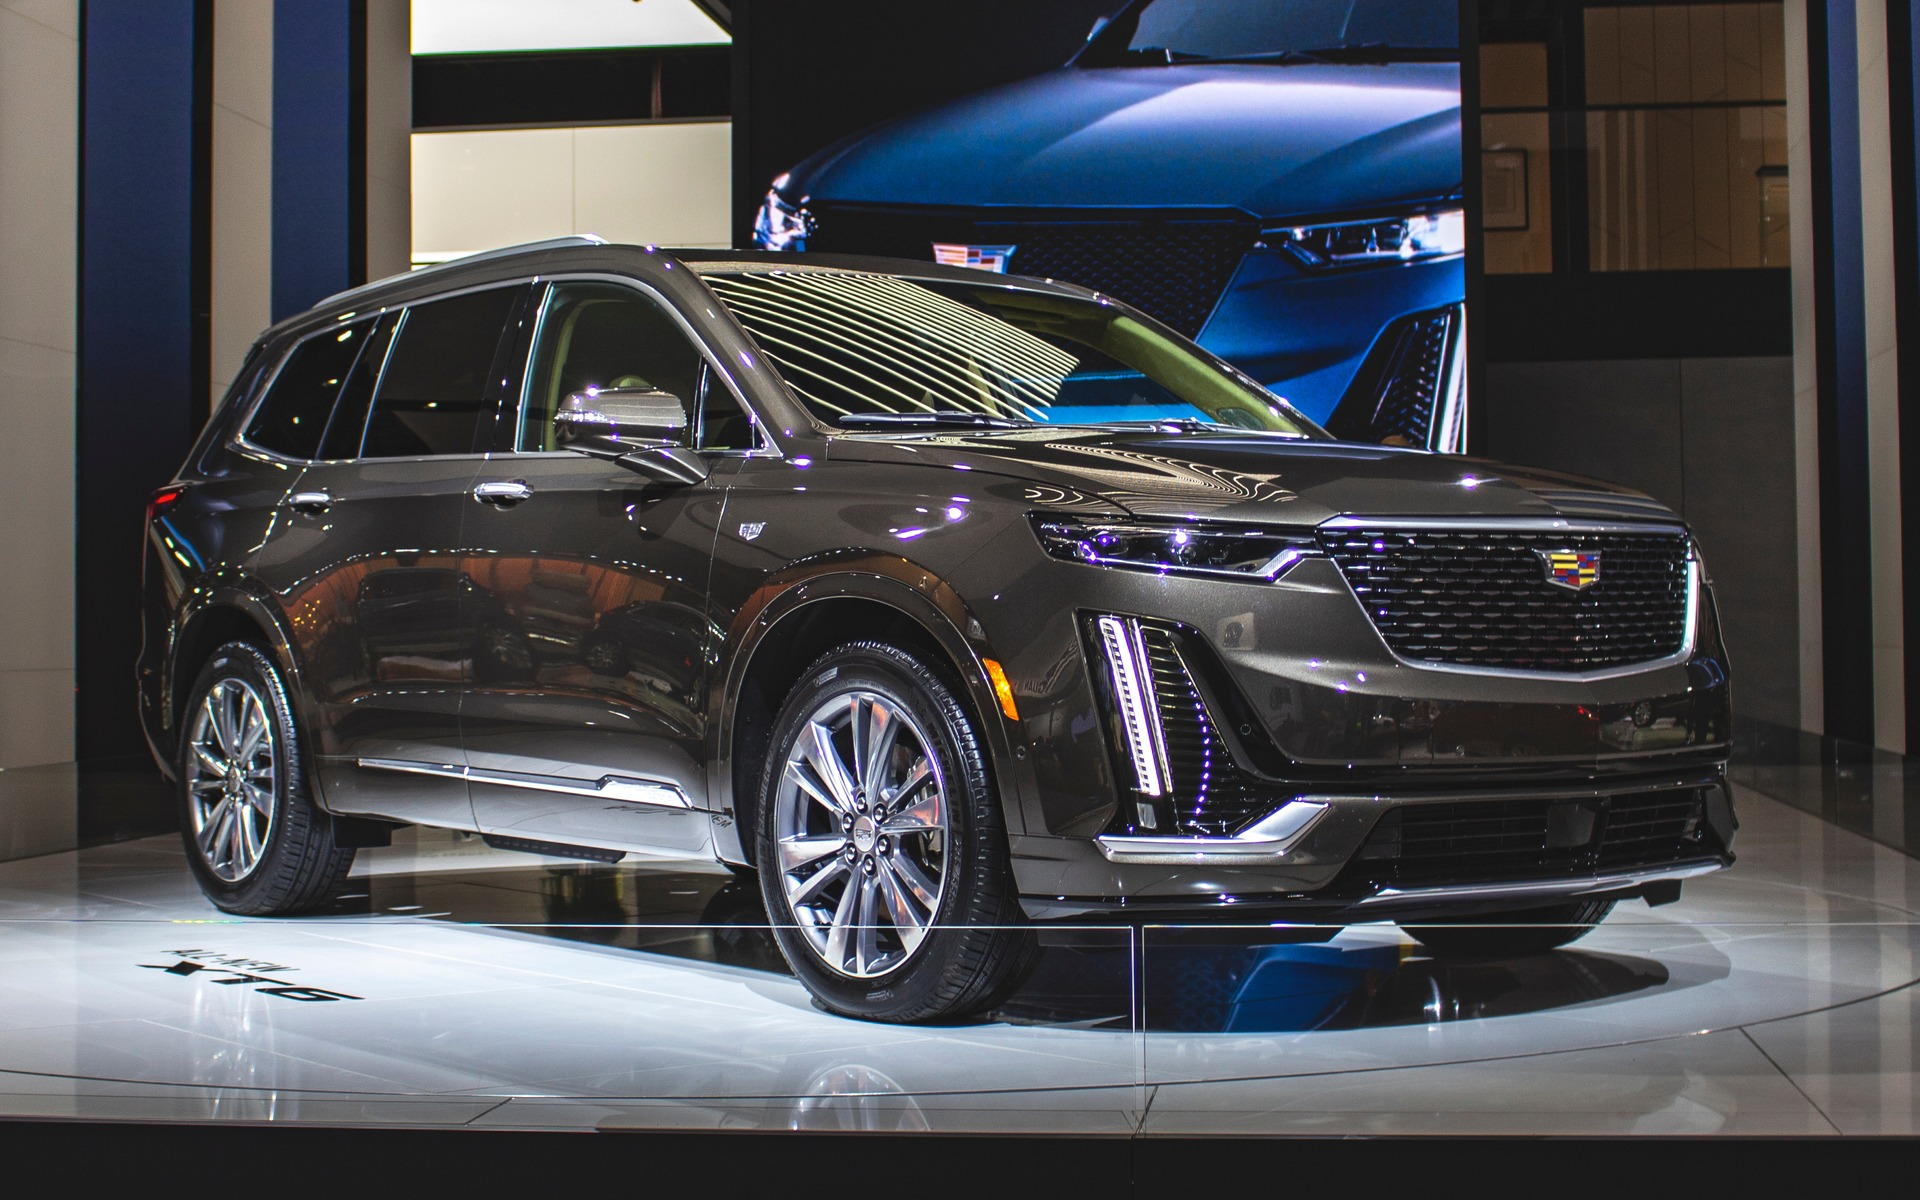 2020 cadillac xt6 the brand's fourth utility vehicle